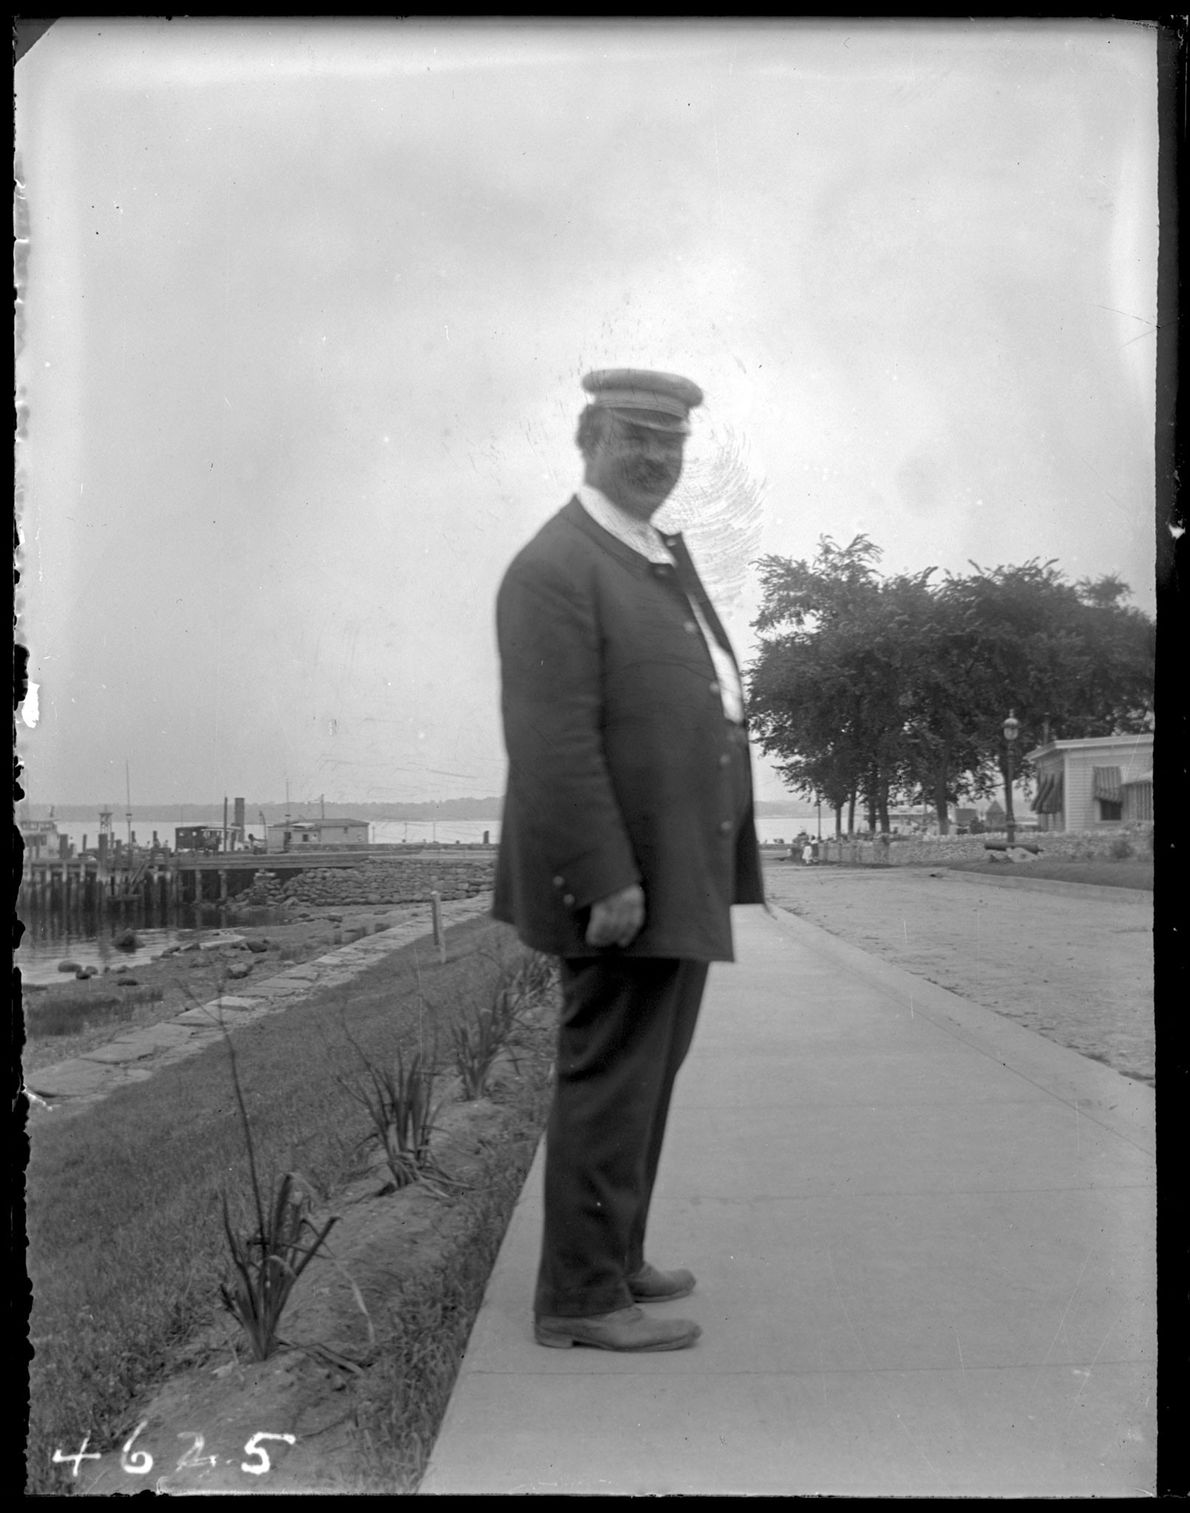 A reformatory keeper c. 1913. Keepers were notoriously cruel: A 1915 investigation found guards doled out ...